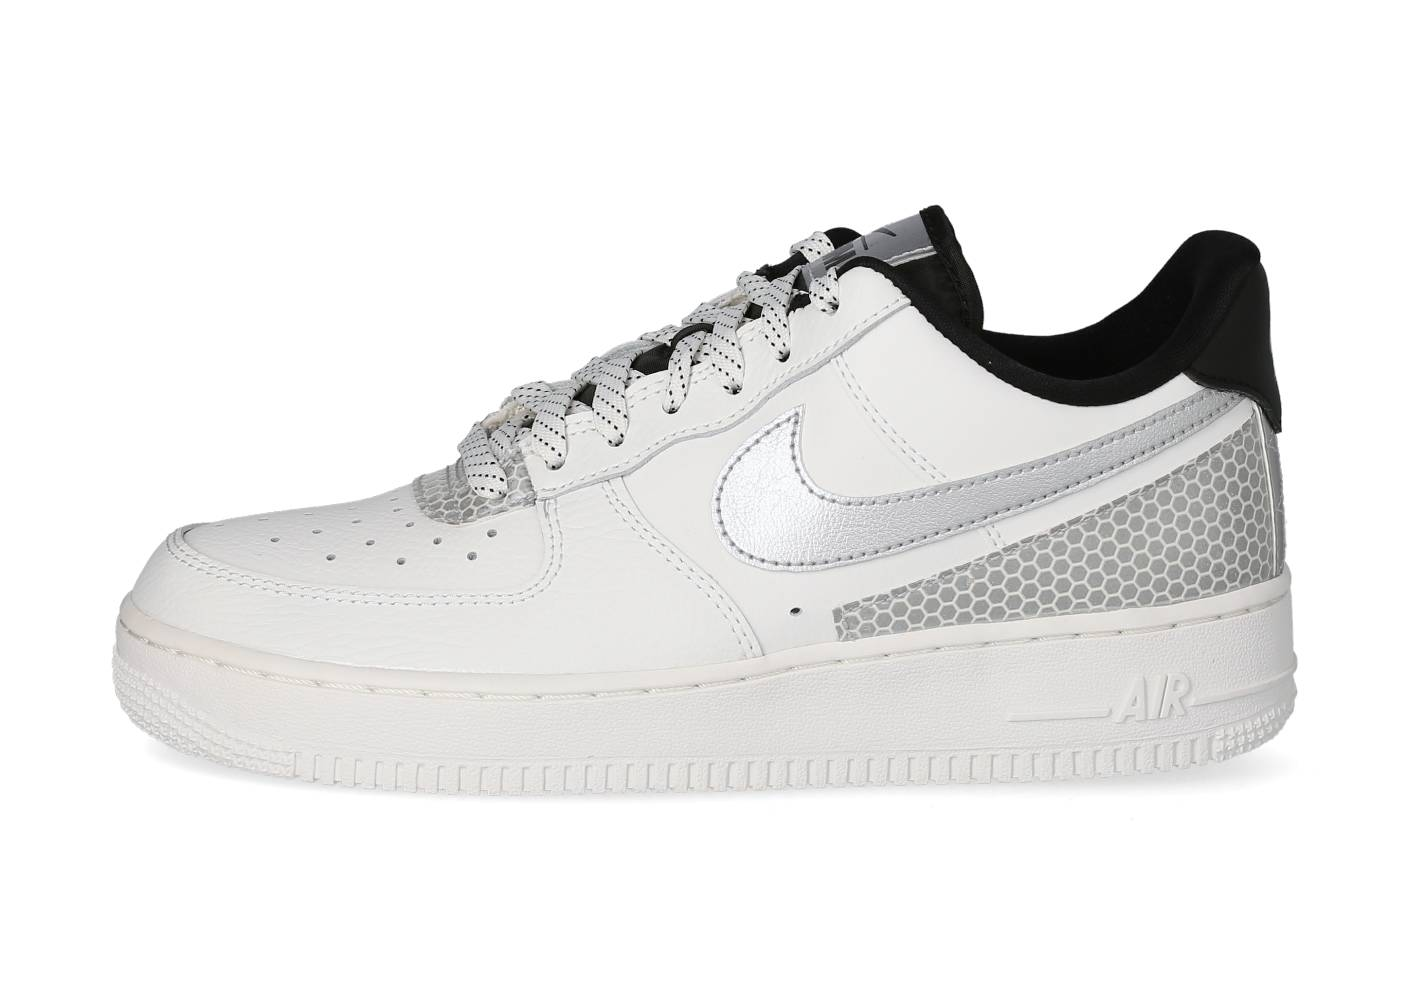 Nike Homme Air Force 1 Lv8 3m Blanche Baskets 42